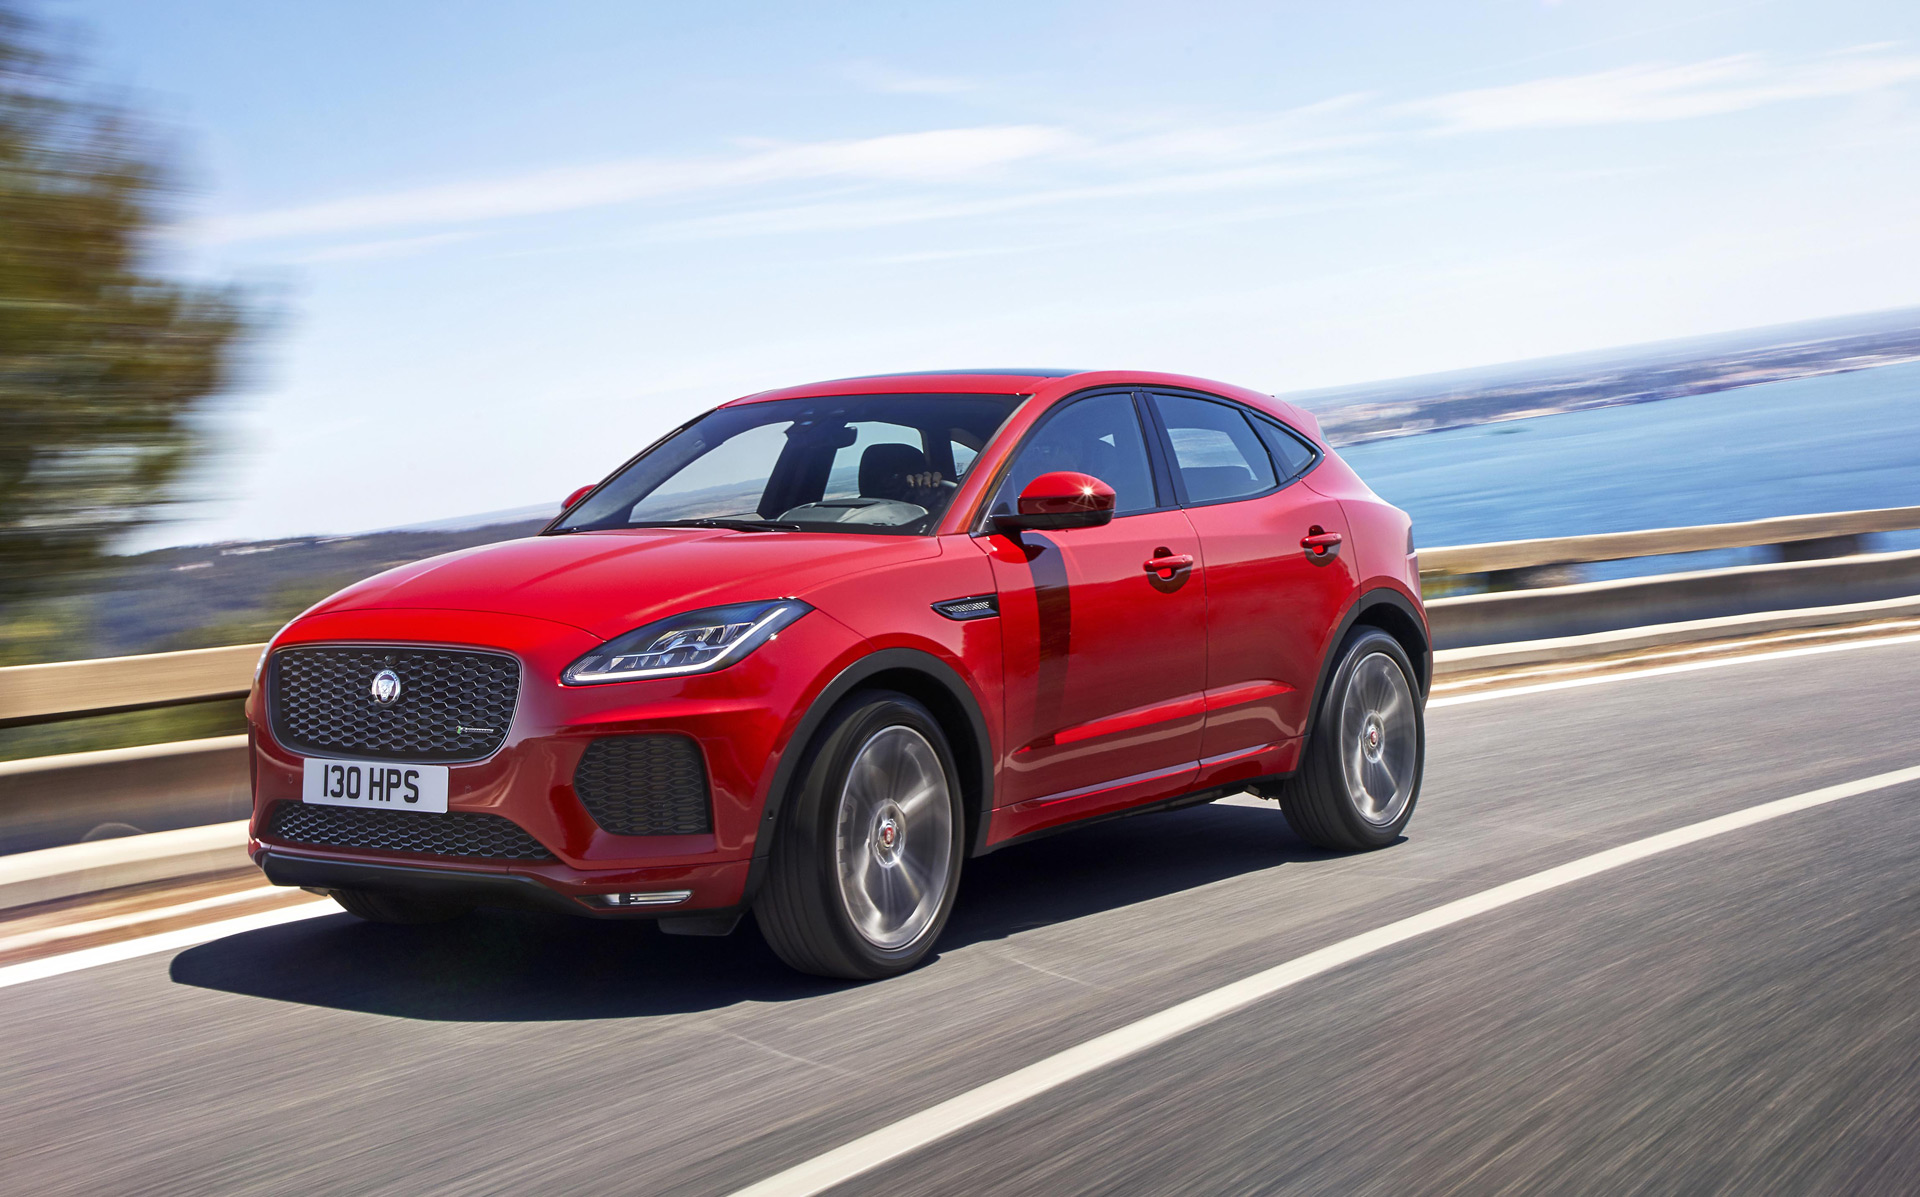 new and used jaguar e pace prices photos reviews specs the car connection. Black Bedroom Furniture Sets. Home Design Ideas